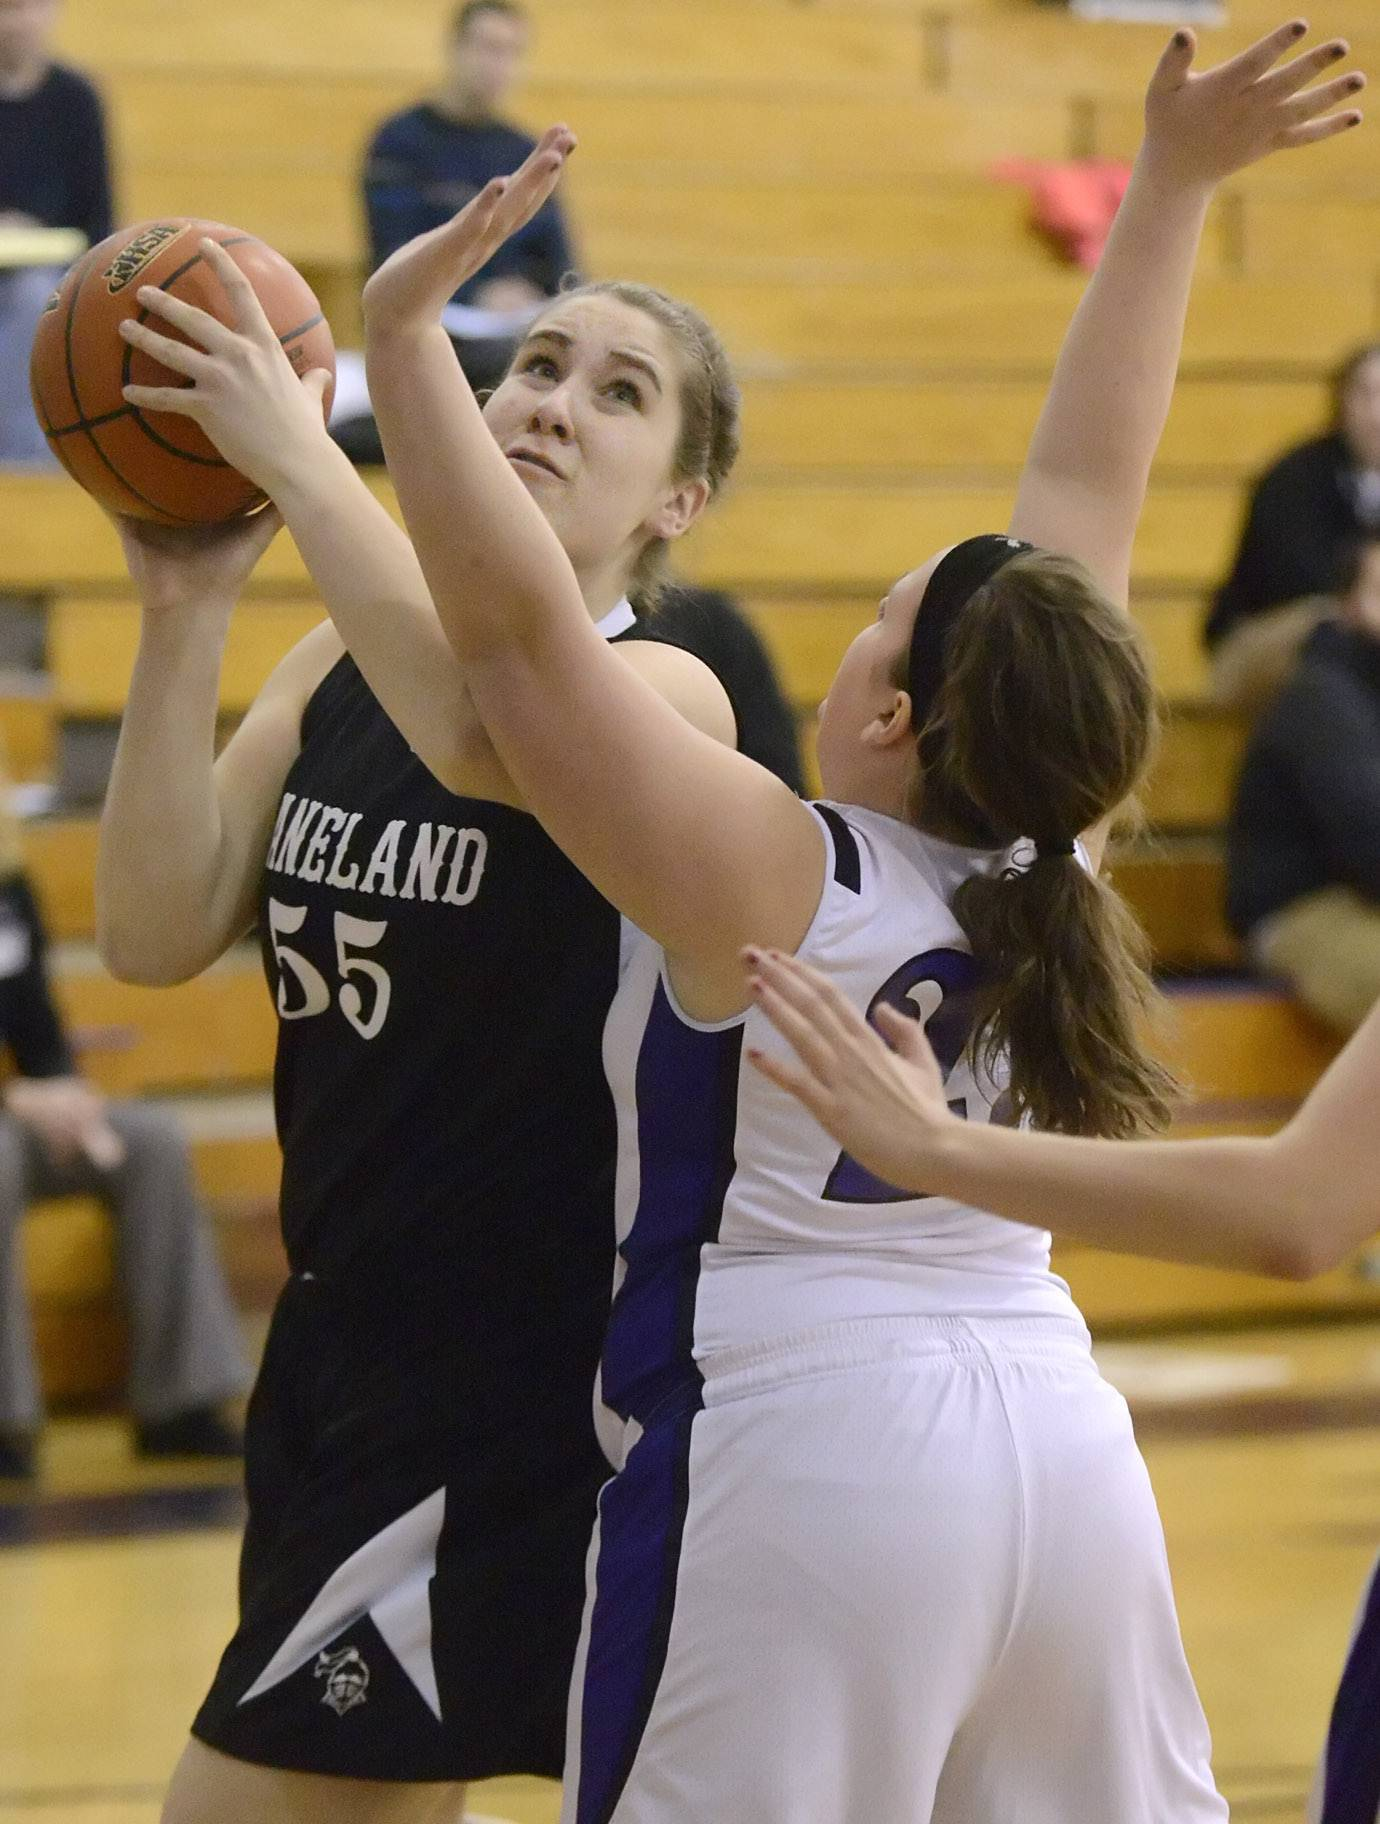 Kaneland's Bailey Crimmins shoots over a block by Plano's Lauren Chernick in the first quarter.